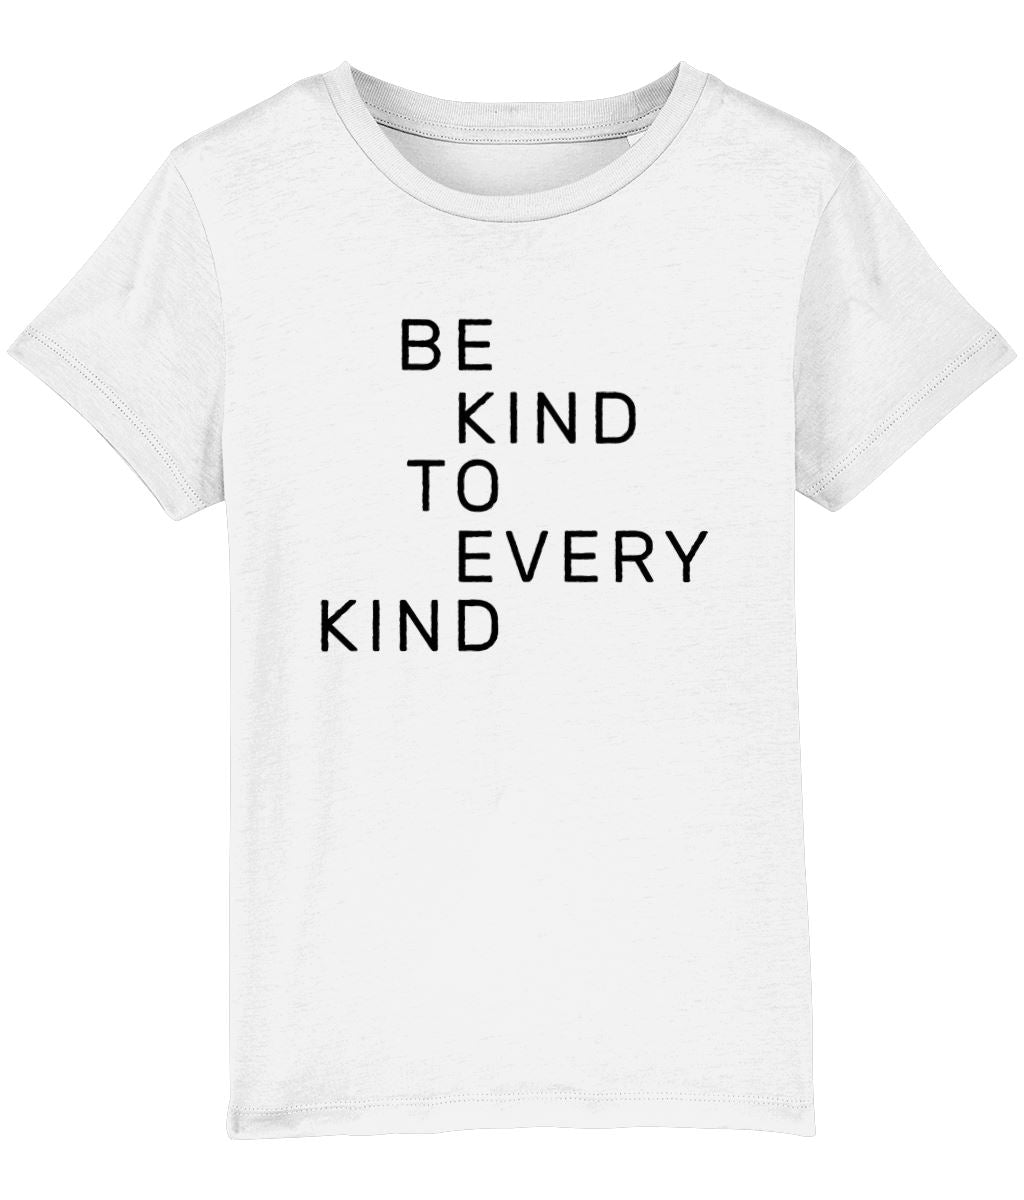 """Be Kind To Every Kind"" Children's Vegan T-Shirt (Unisex) Clothing Vegan Original White 3-4 years"